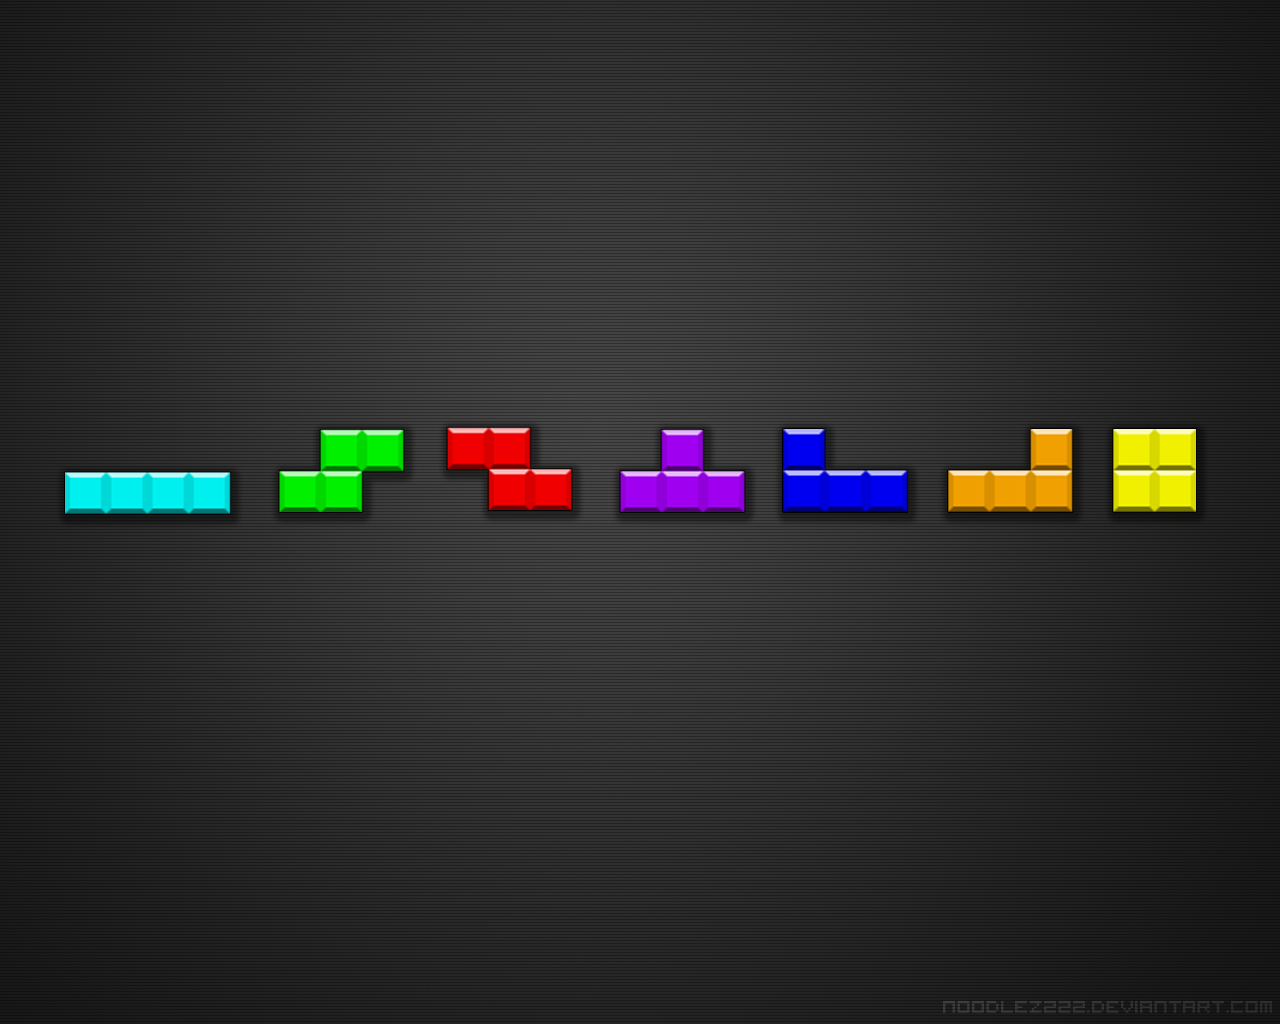 Simpsons Wallpapers 3d Wallpapers Hd 22 Wallpapers Del Juego Tetris Fondos De